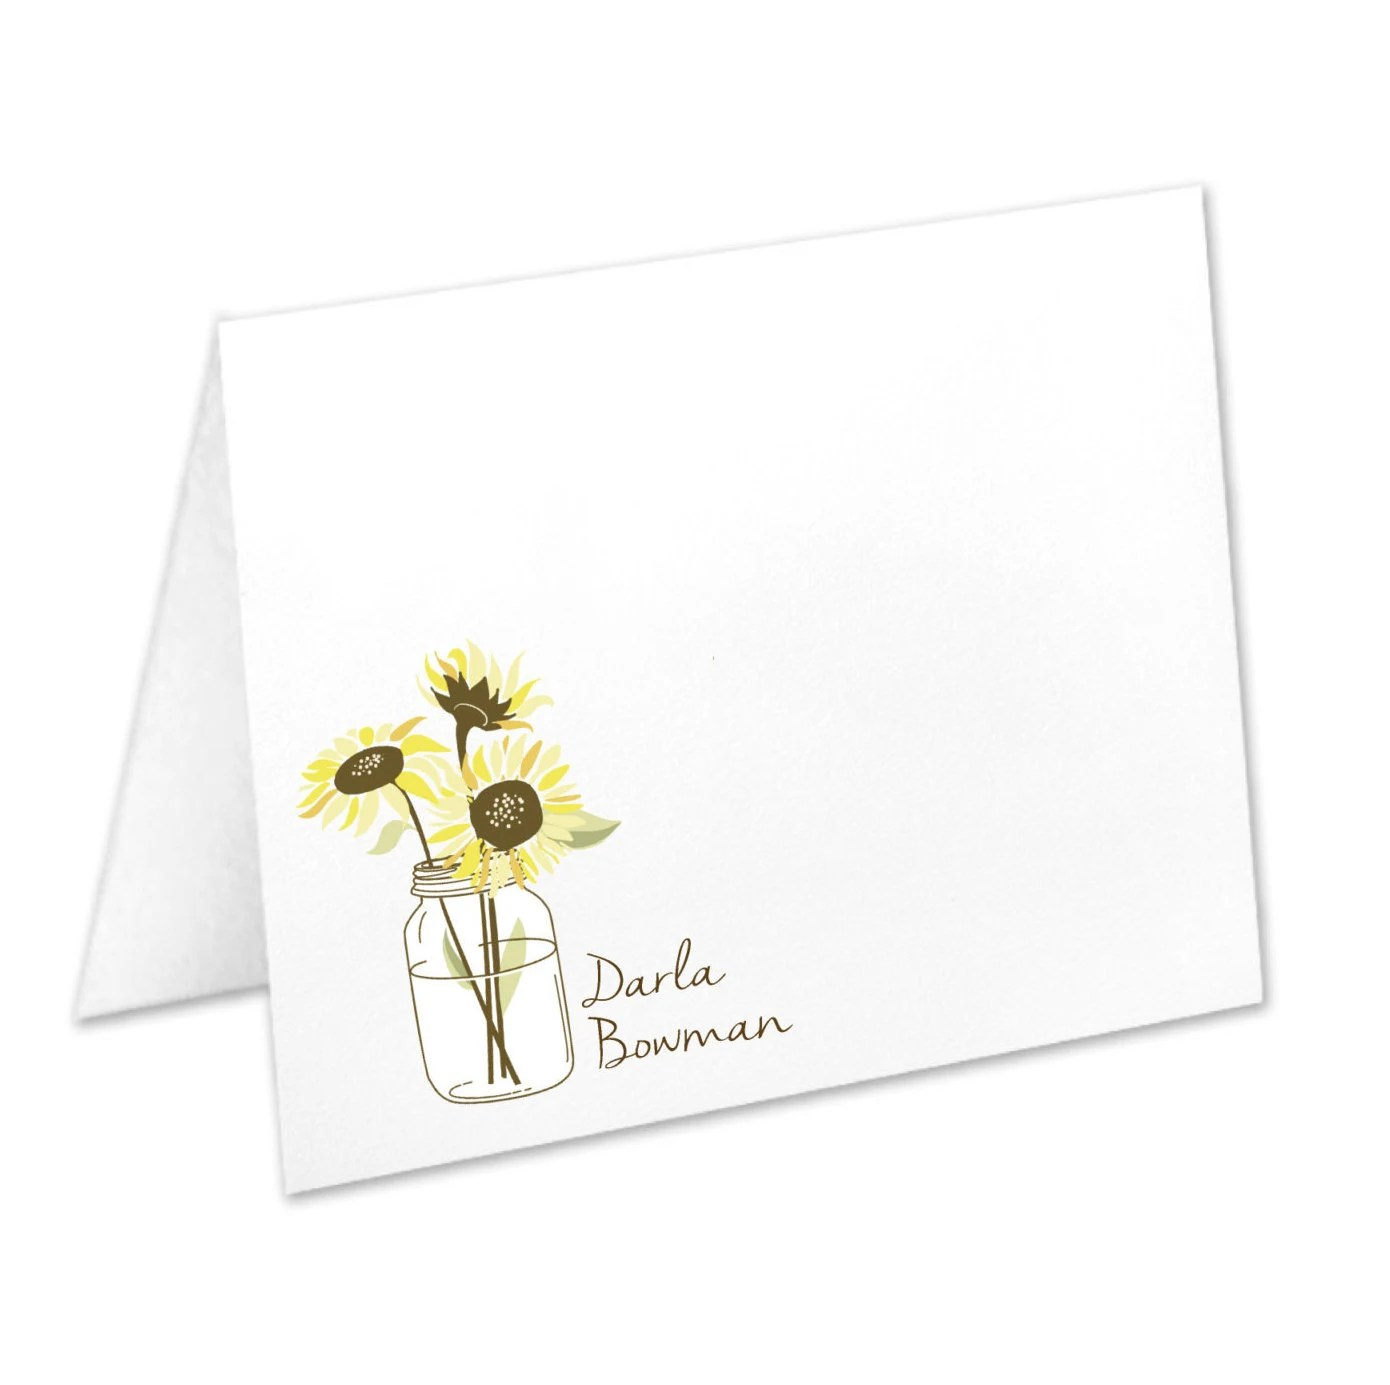 Personalized Sunflower Stationery Sunflower Note Cards